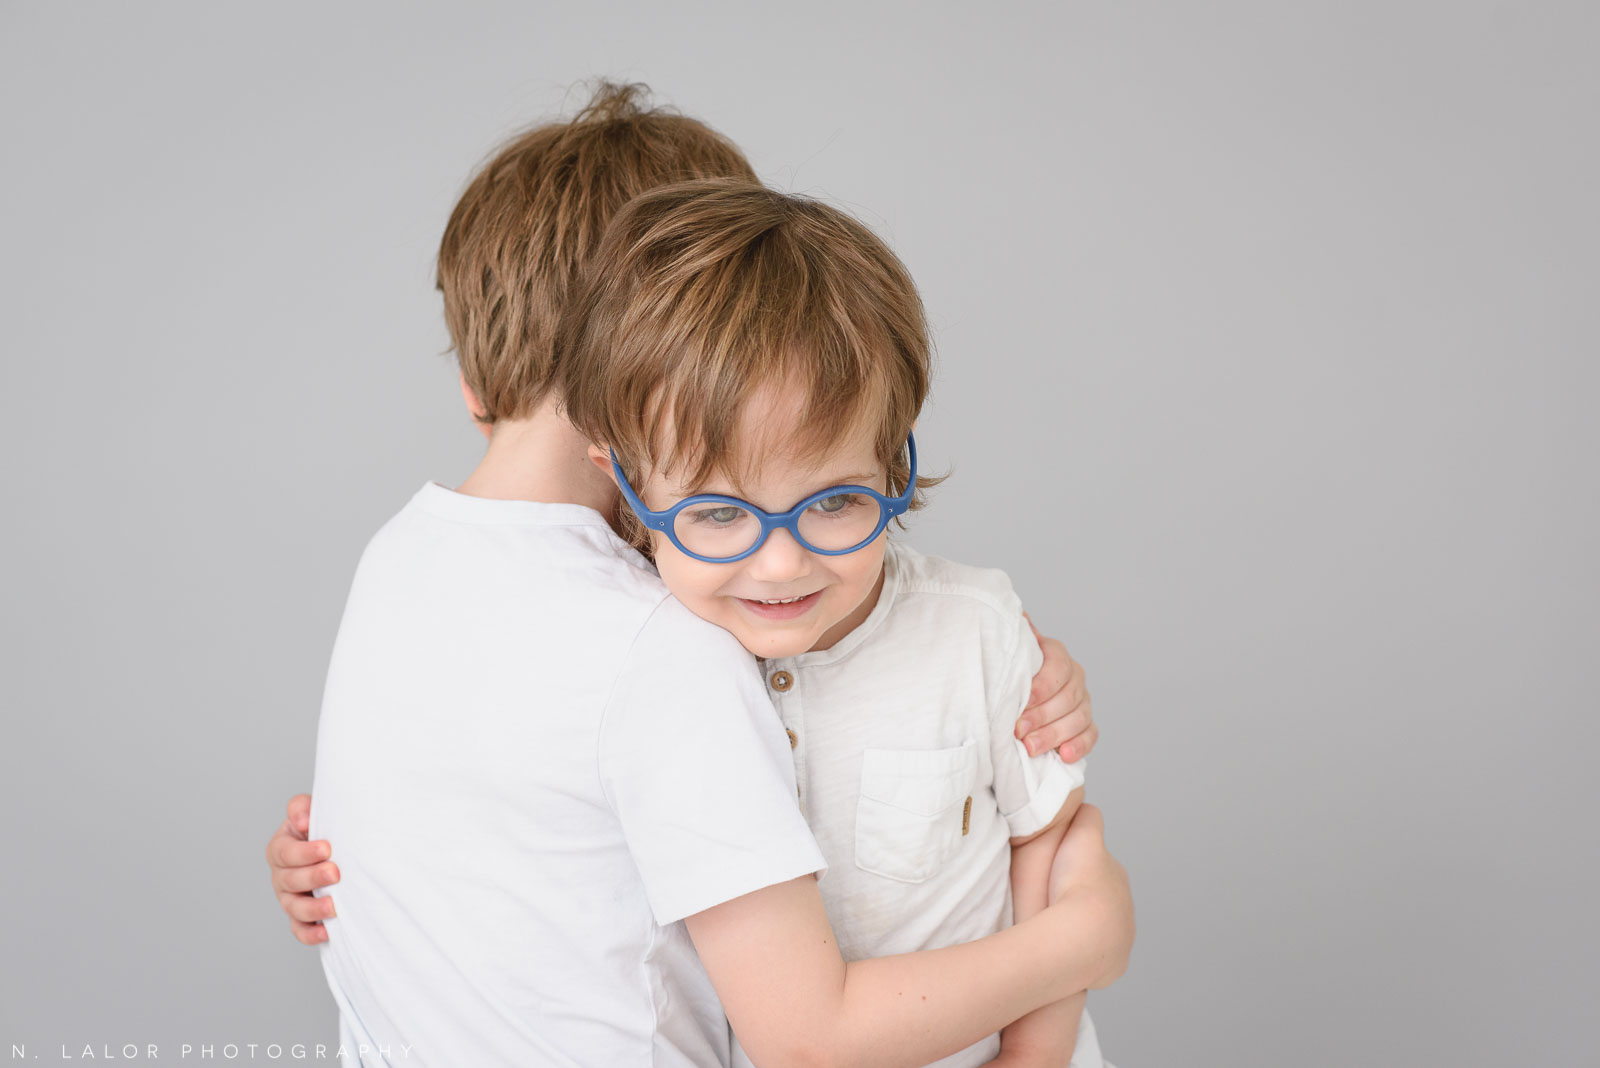 Brothers, a hug. Simple studio portrait session with N. Lalor Photography in Greenwich, CT.